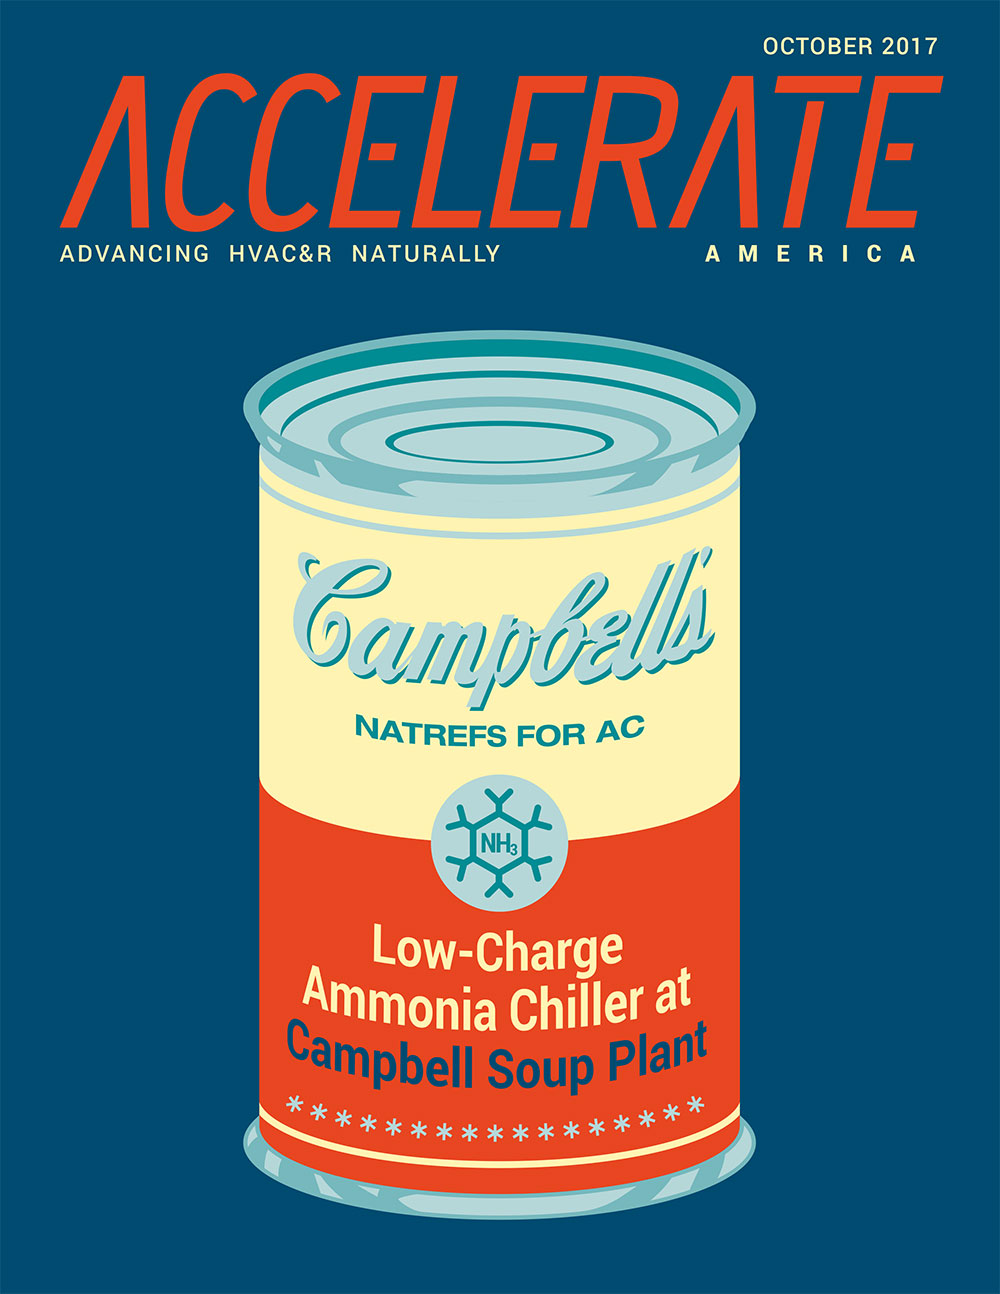 NatRefs for AC: Low-Charge Ammonia Chiller at Campbell Soup Plant